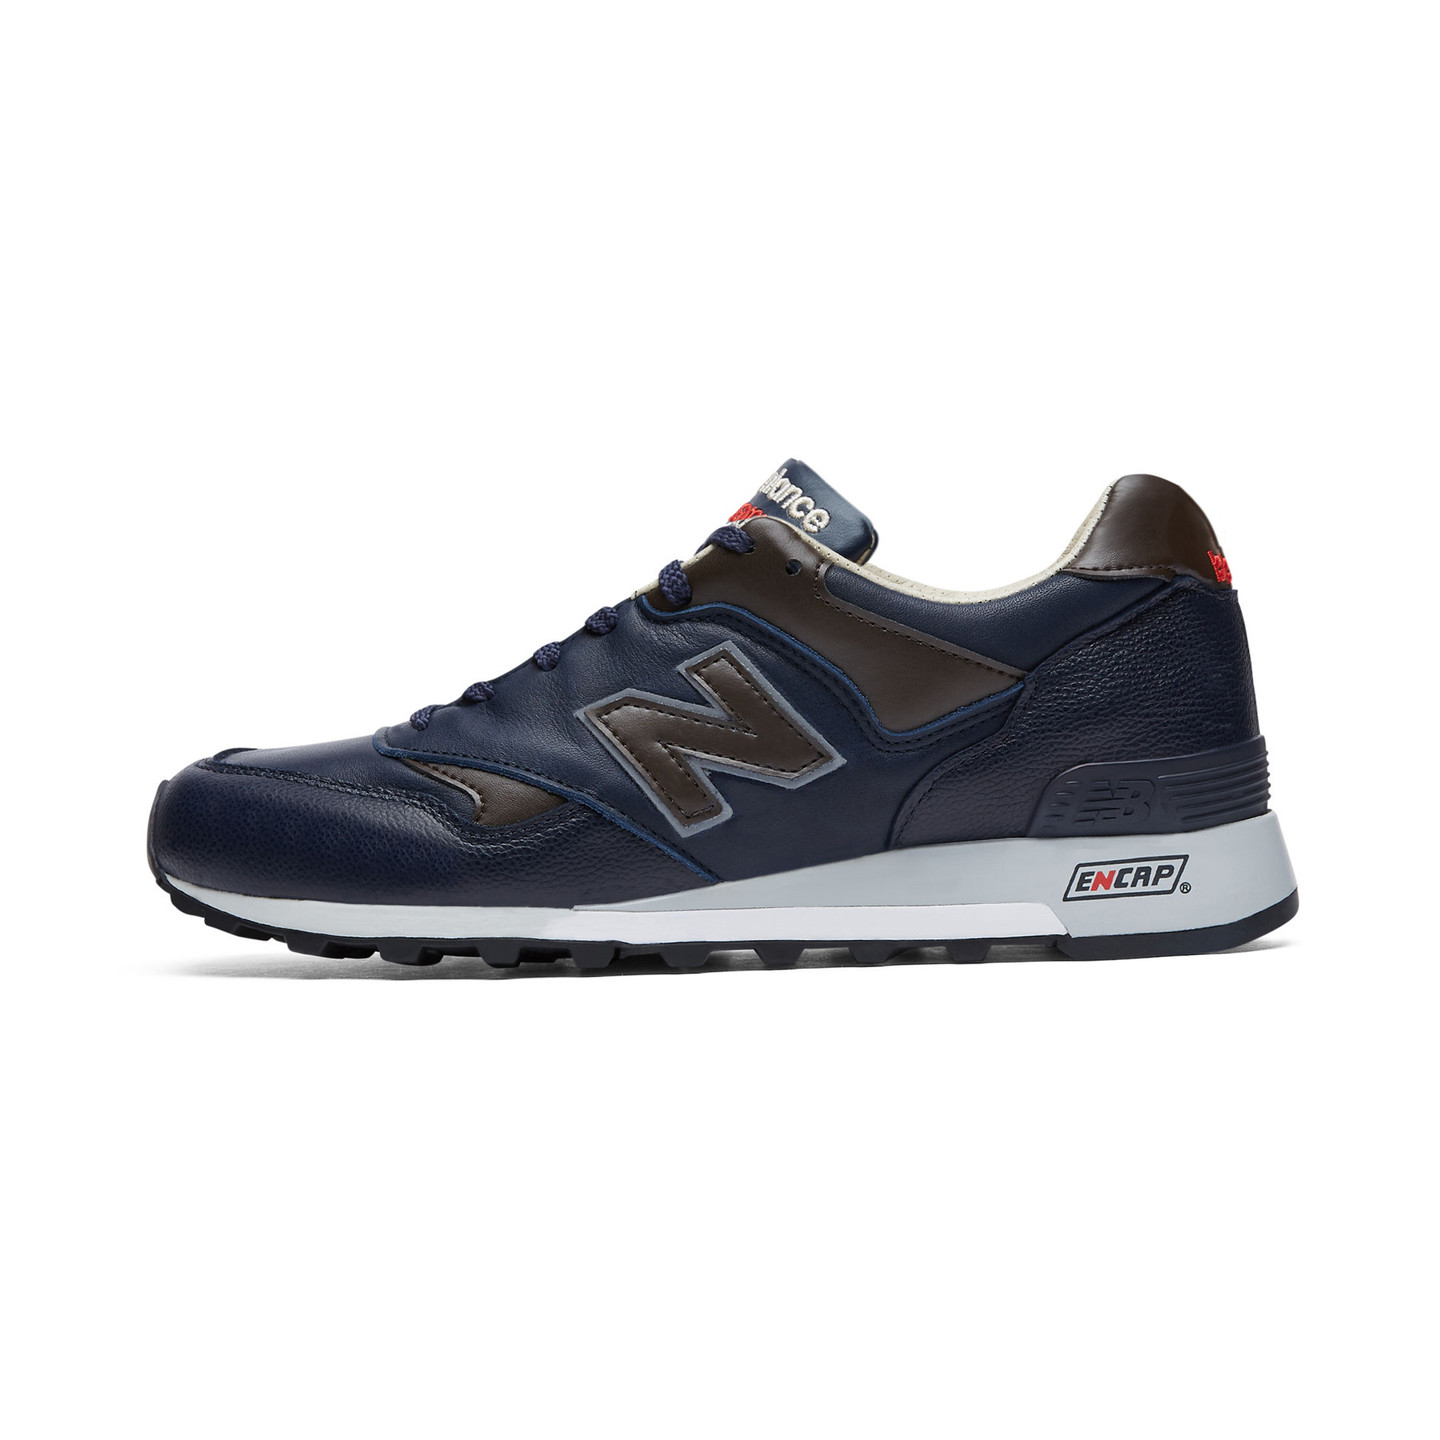 New Balance M577 GNB - Made in England Navy / Brown / Red M577GNB